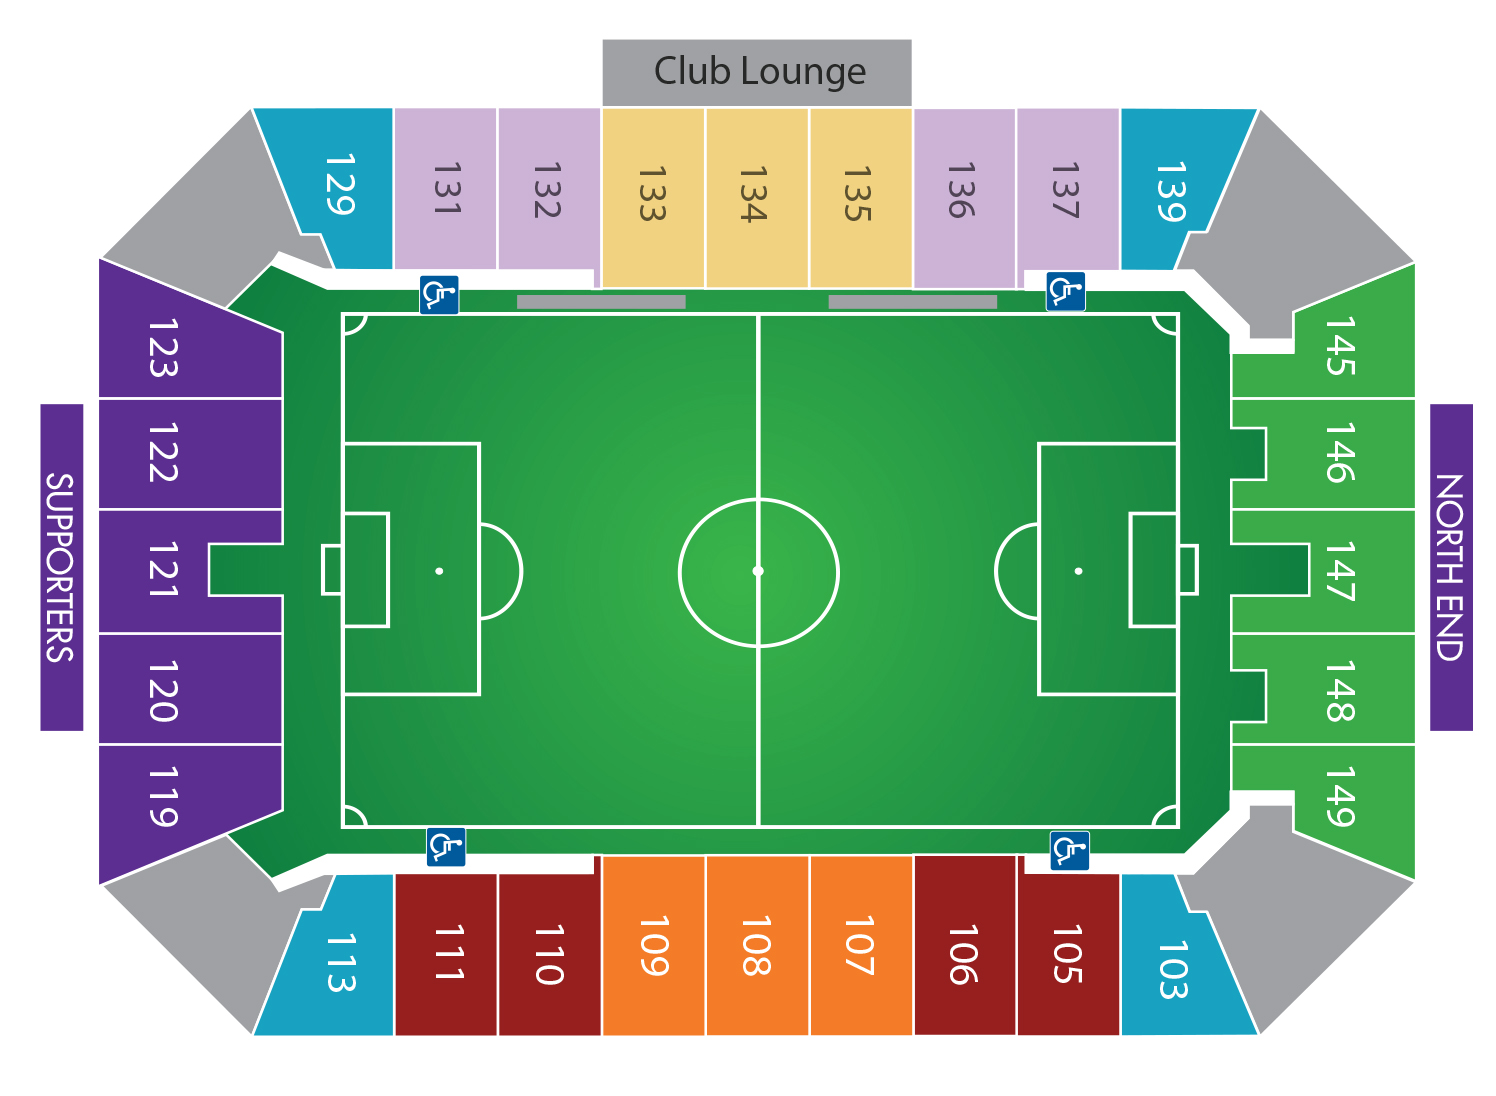 Orlando City Soccer 2015 Citrus Bowl Seating Map.jpg